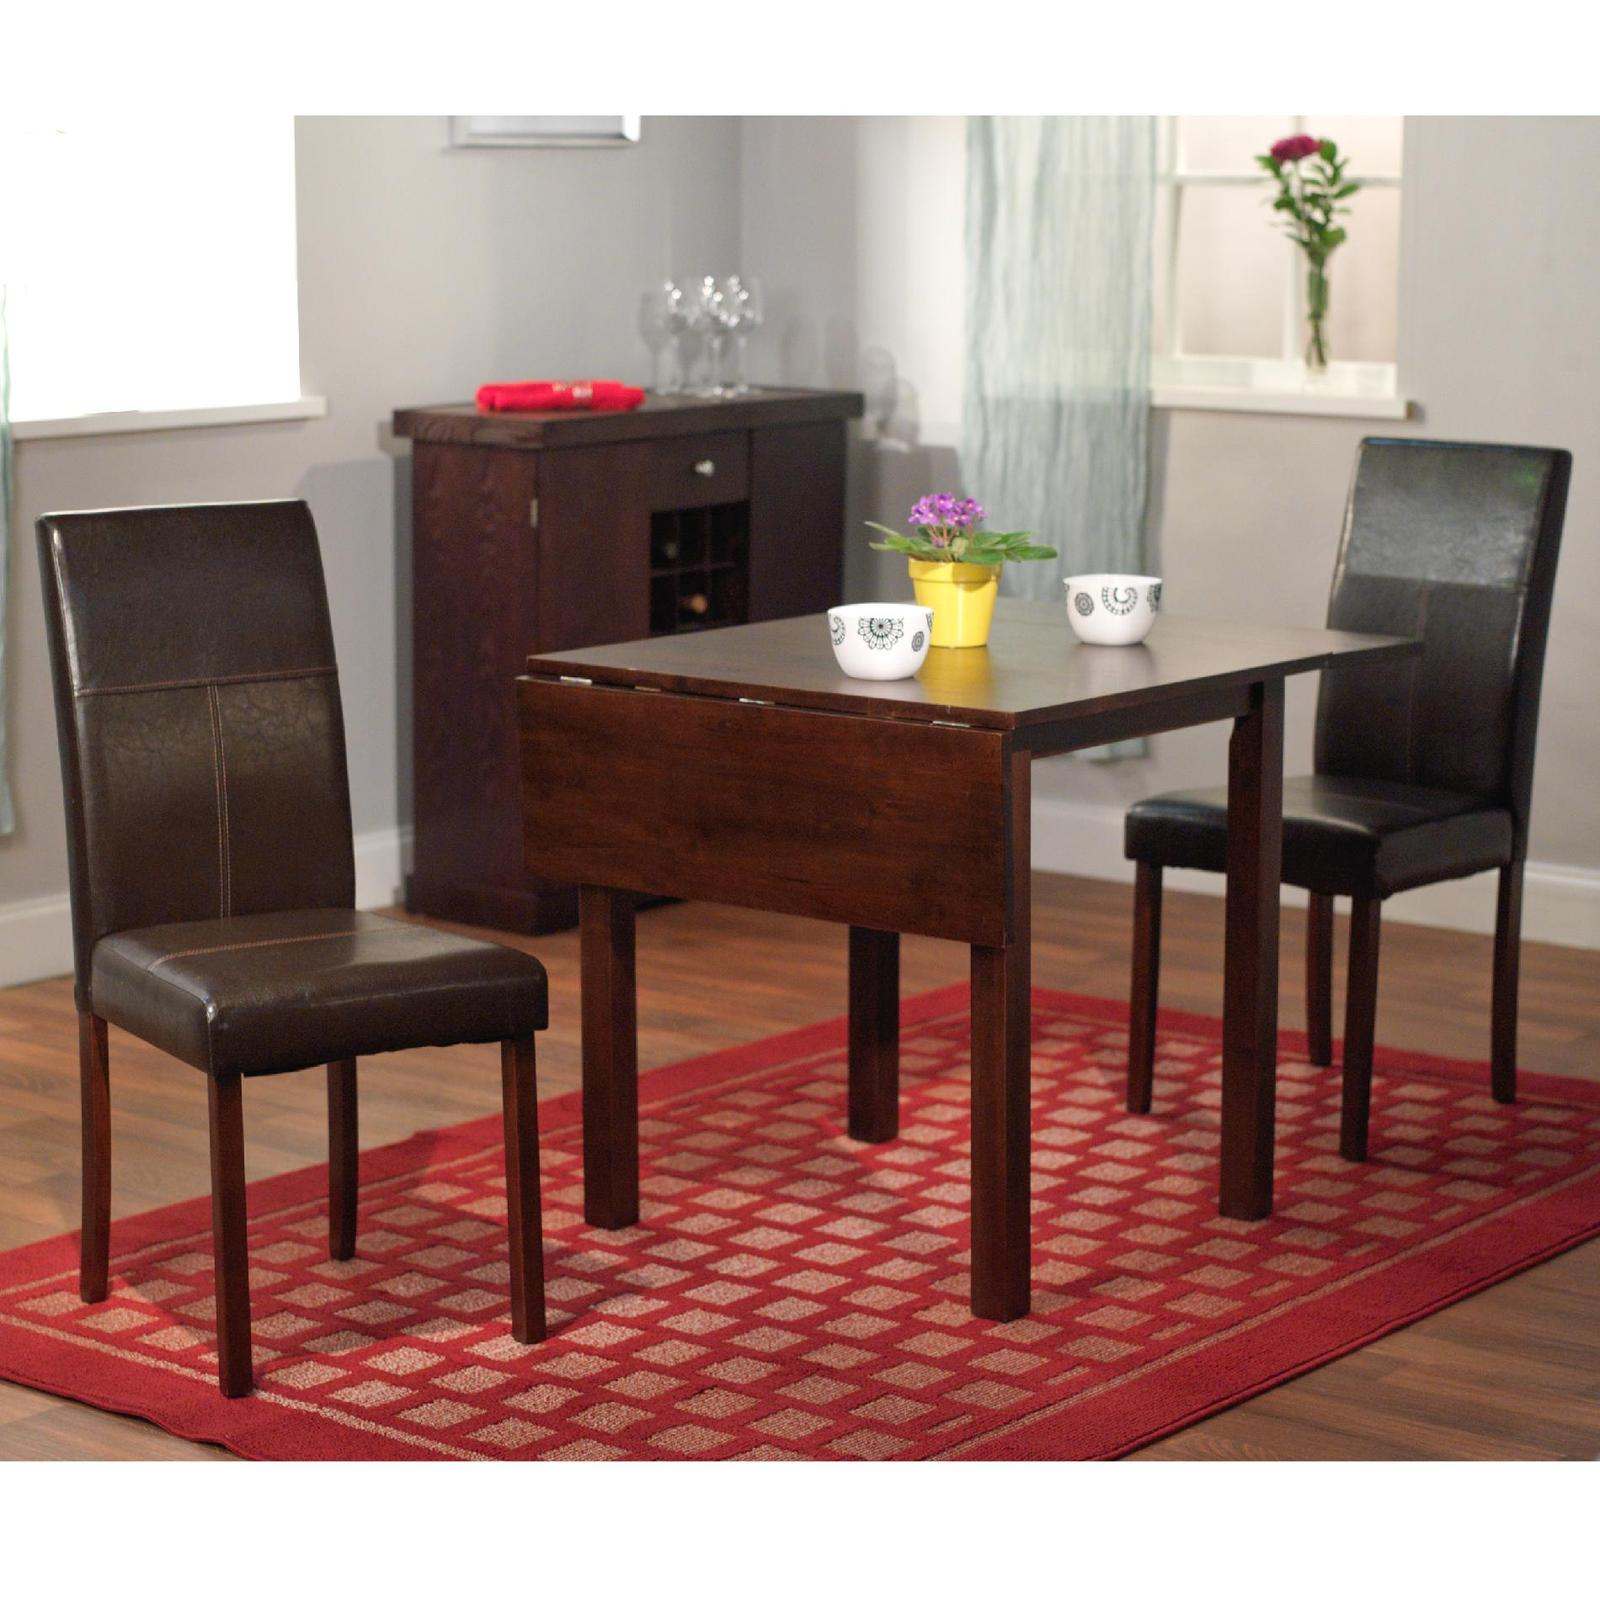 Dining room set wooden furniture 3 piece drop leaf table for 3 piece dining room table